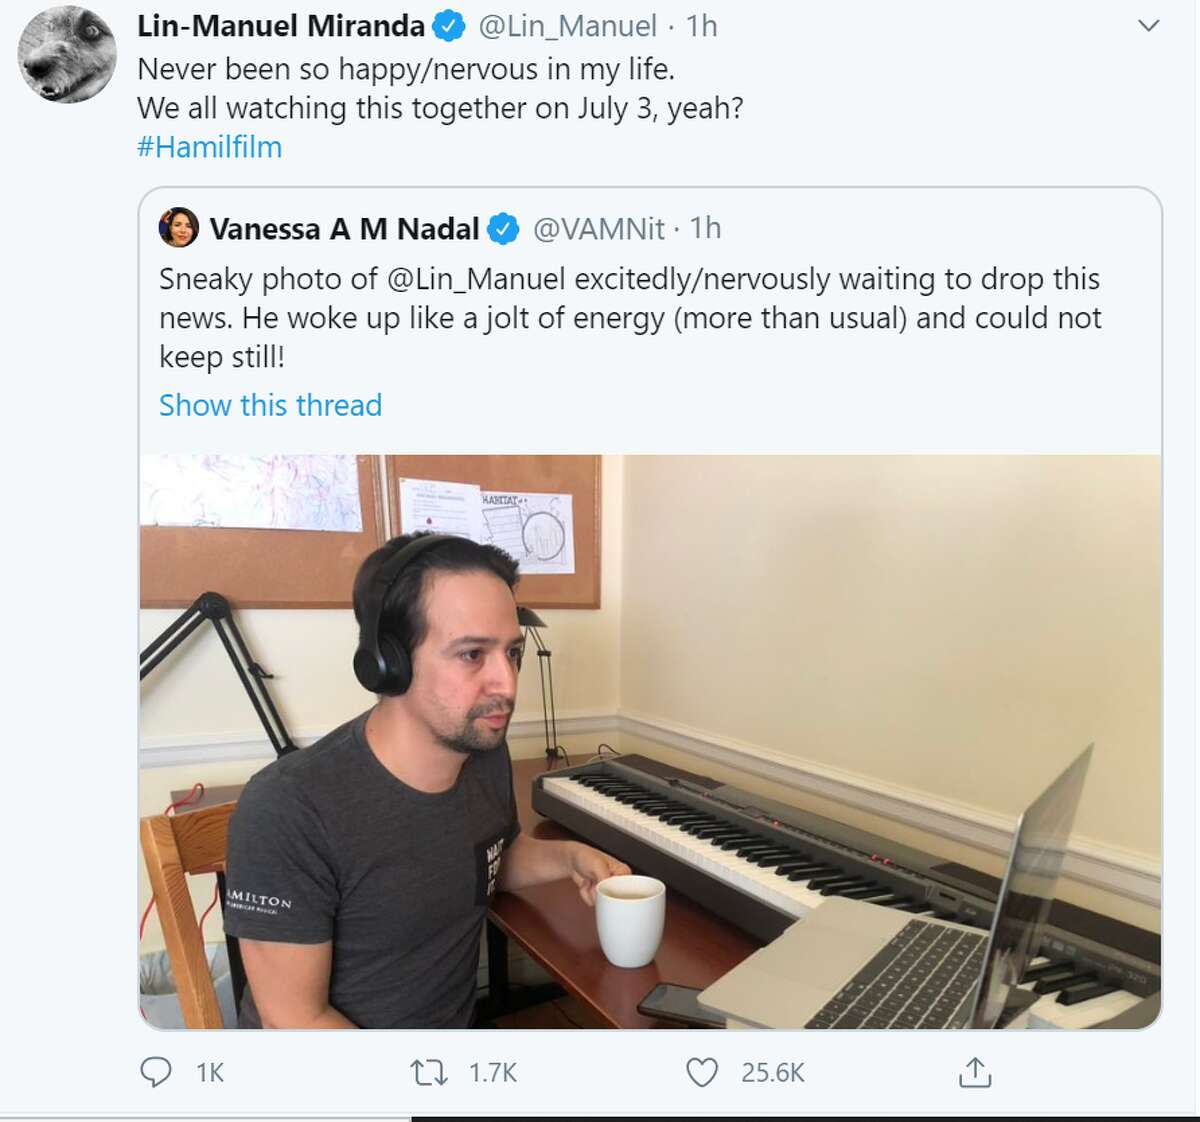 Vanessa Nadal, Lin-Manuel Miranda's wife, shared a photo of the multi-talented actor and musician waiting to share the news about